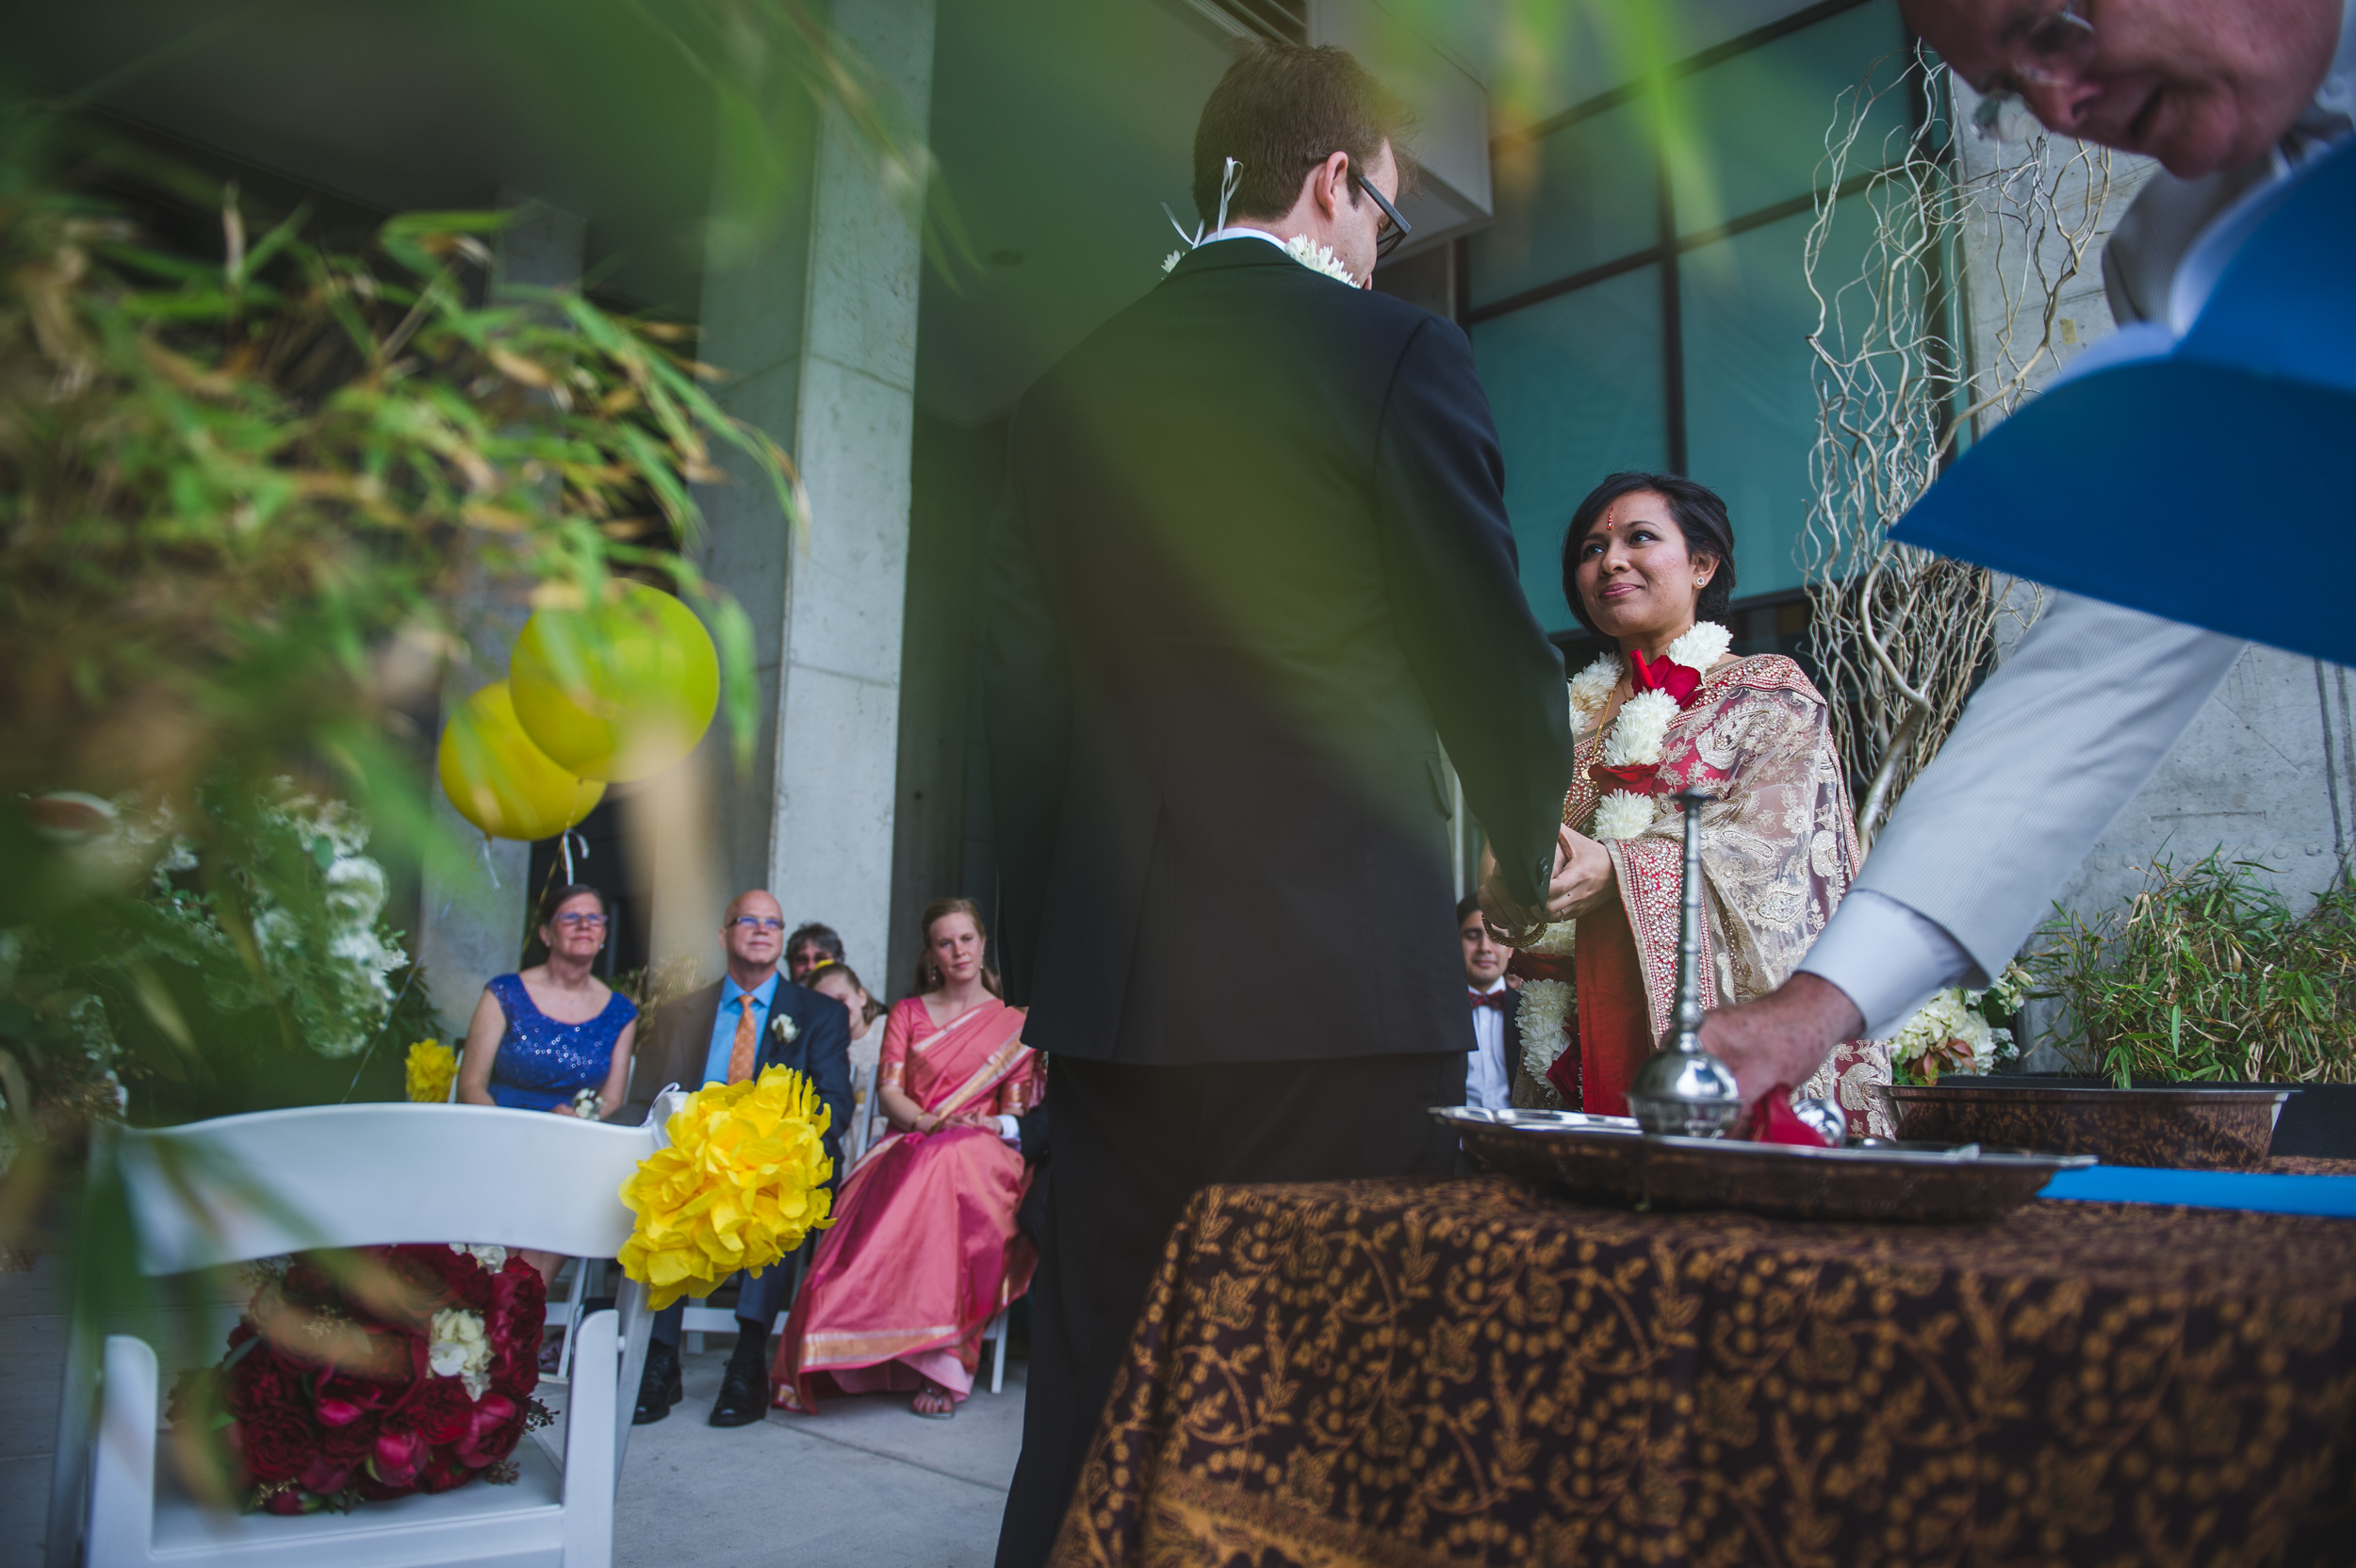 Photojournalistic wedding photography Baltimore MD By Mantas Kubilinskas-11.jpg